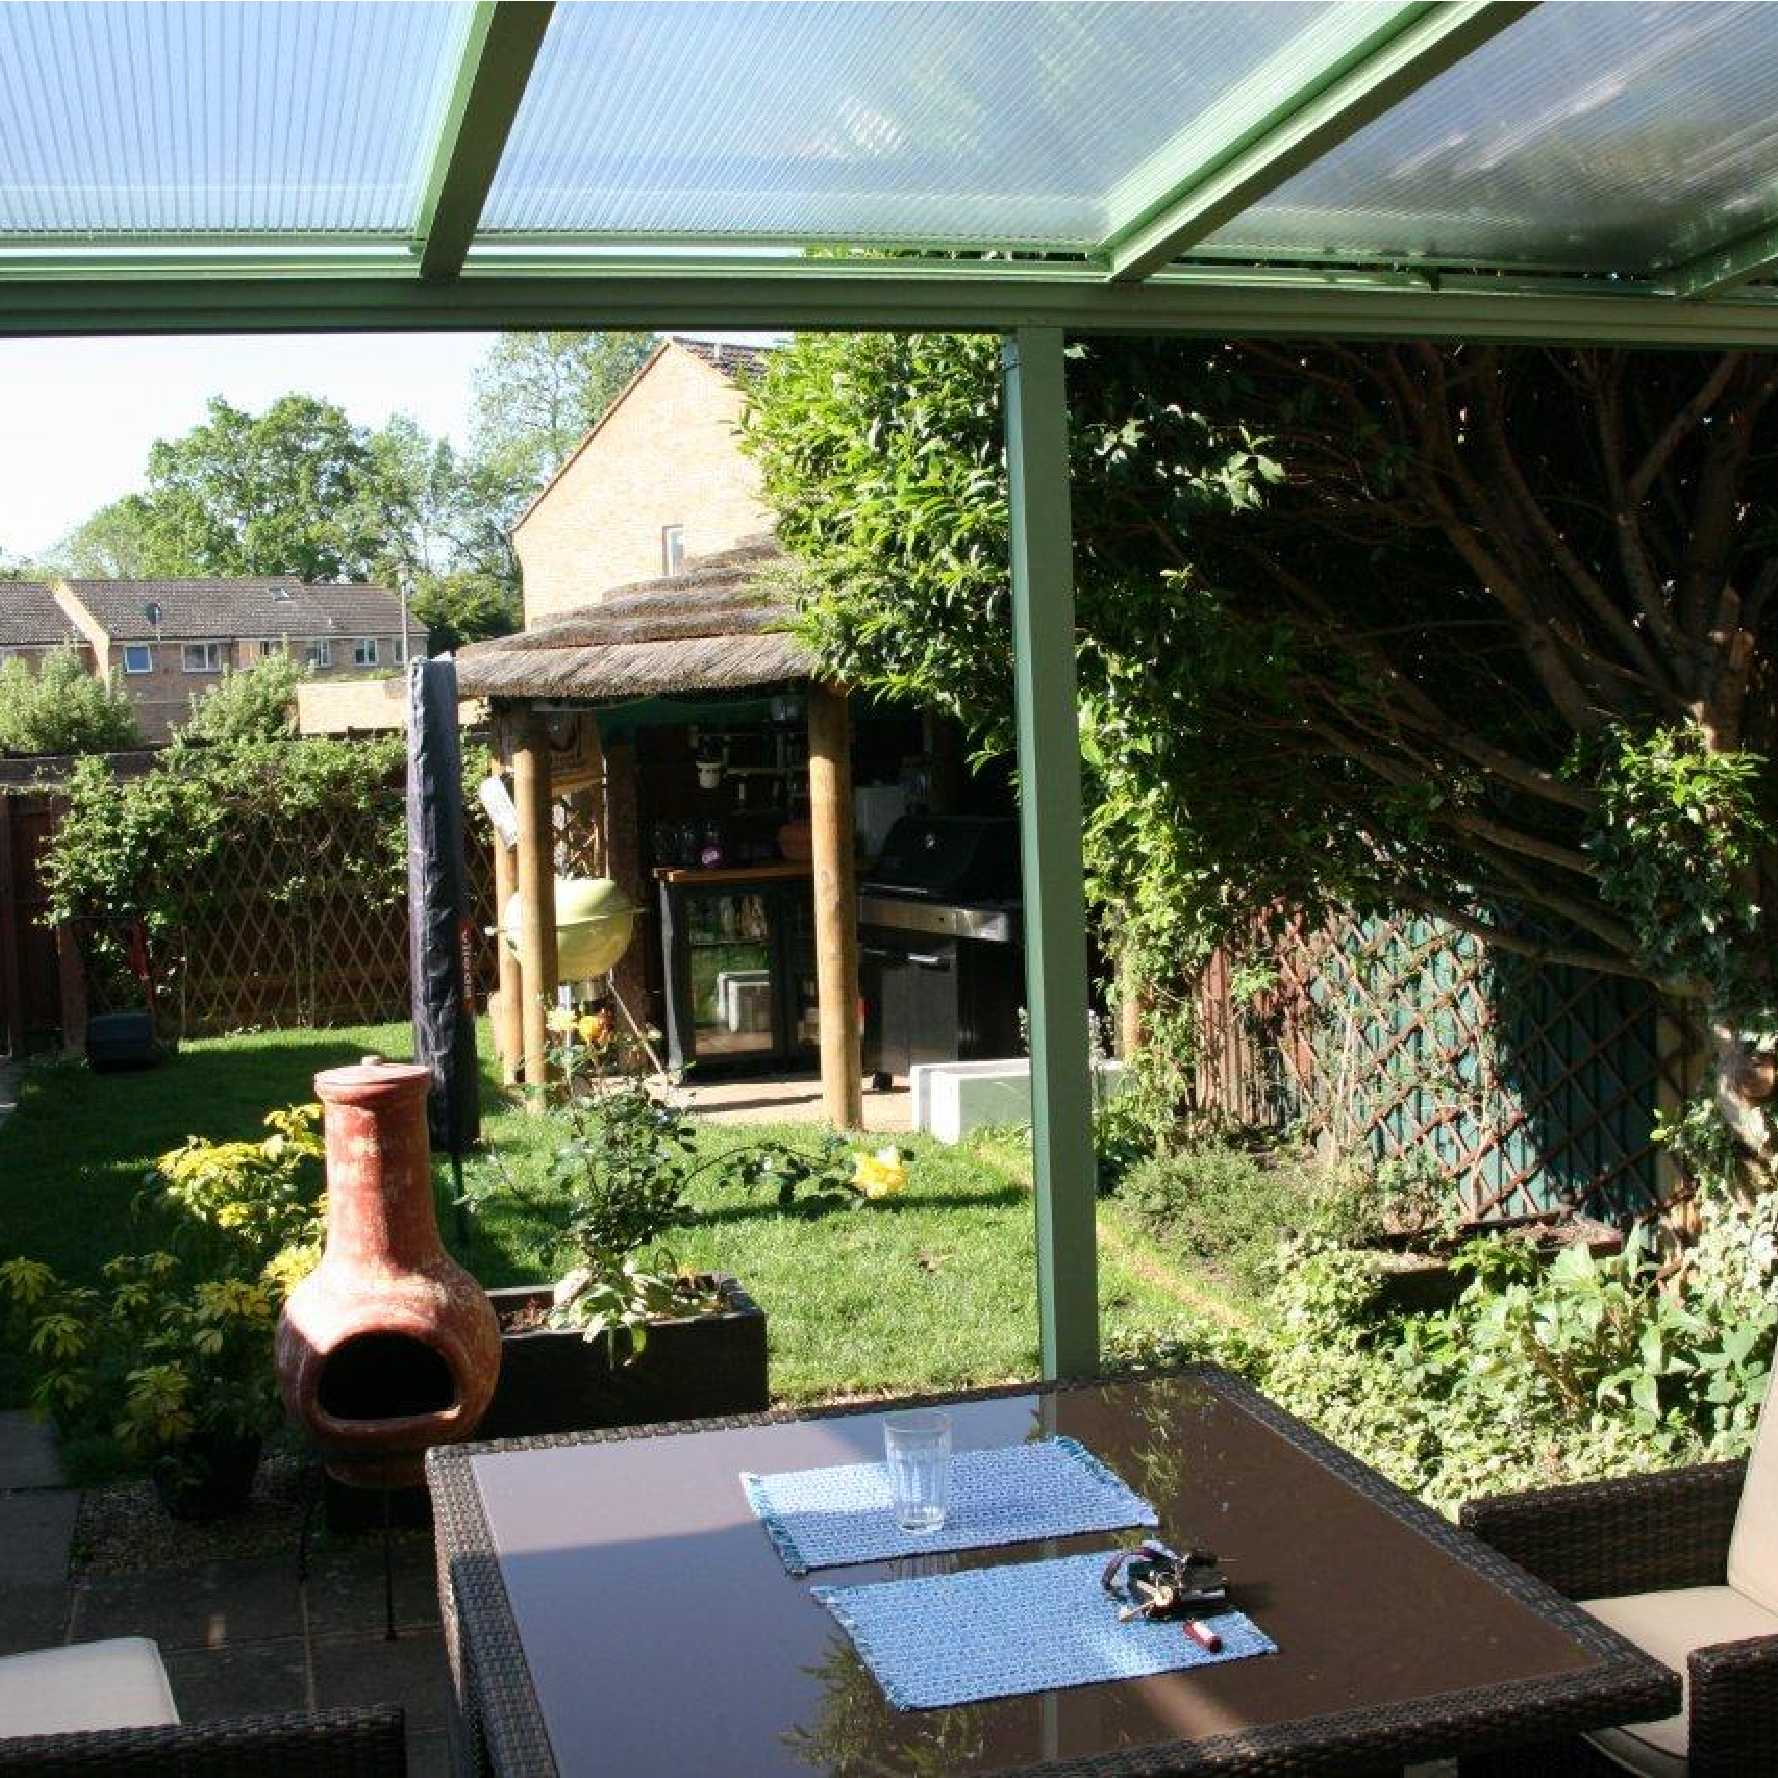 Affordable Omega Smart White Lean-To Canopy with 16mm Polycarbonate Glazing - 5.2m (W) x 2.5m (P), (3) Supporting Posts